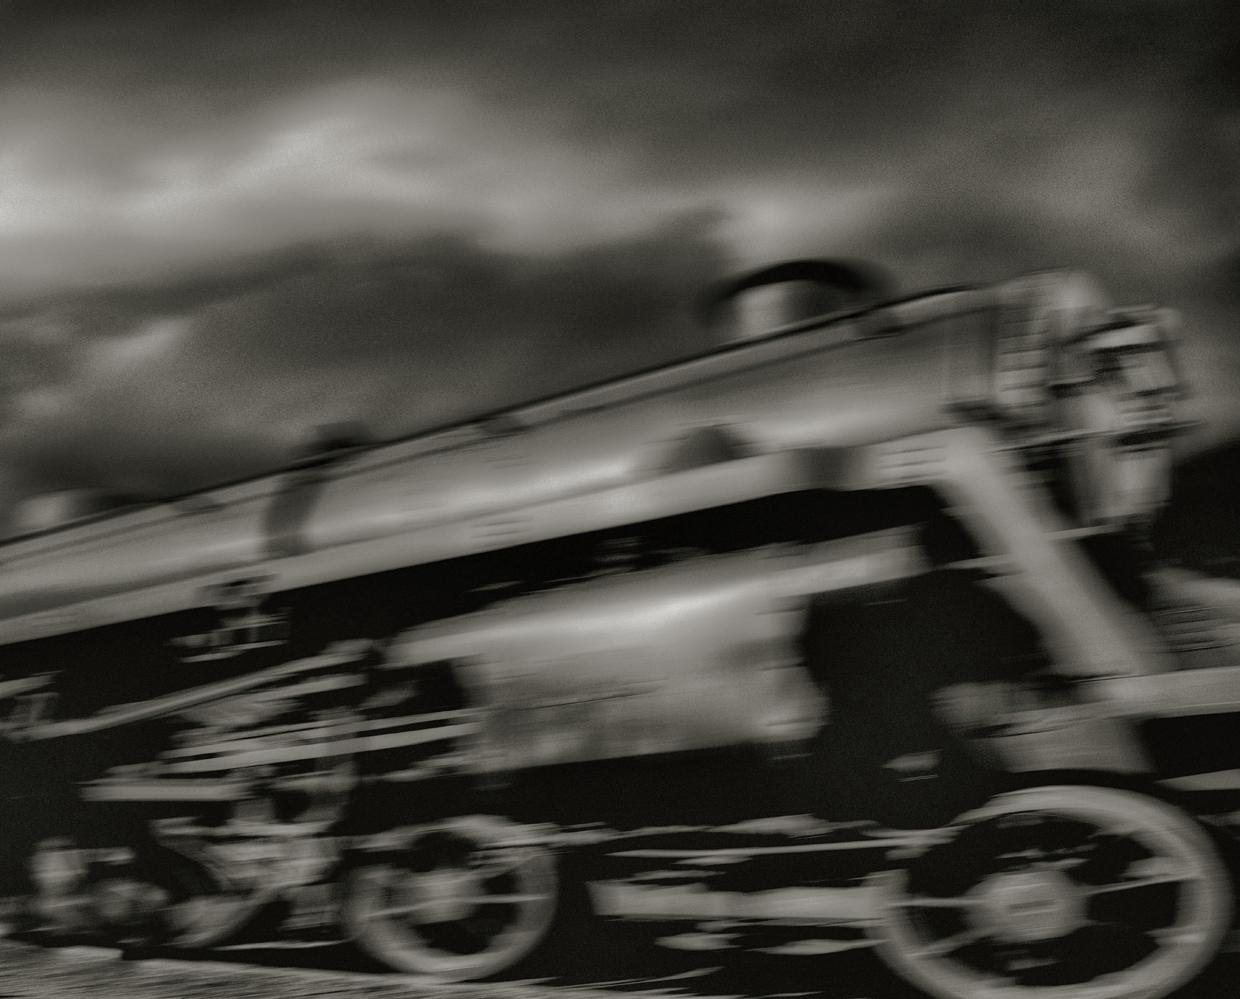 The Wild Train © John Claridge